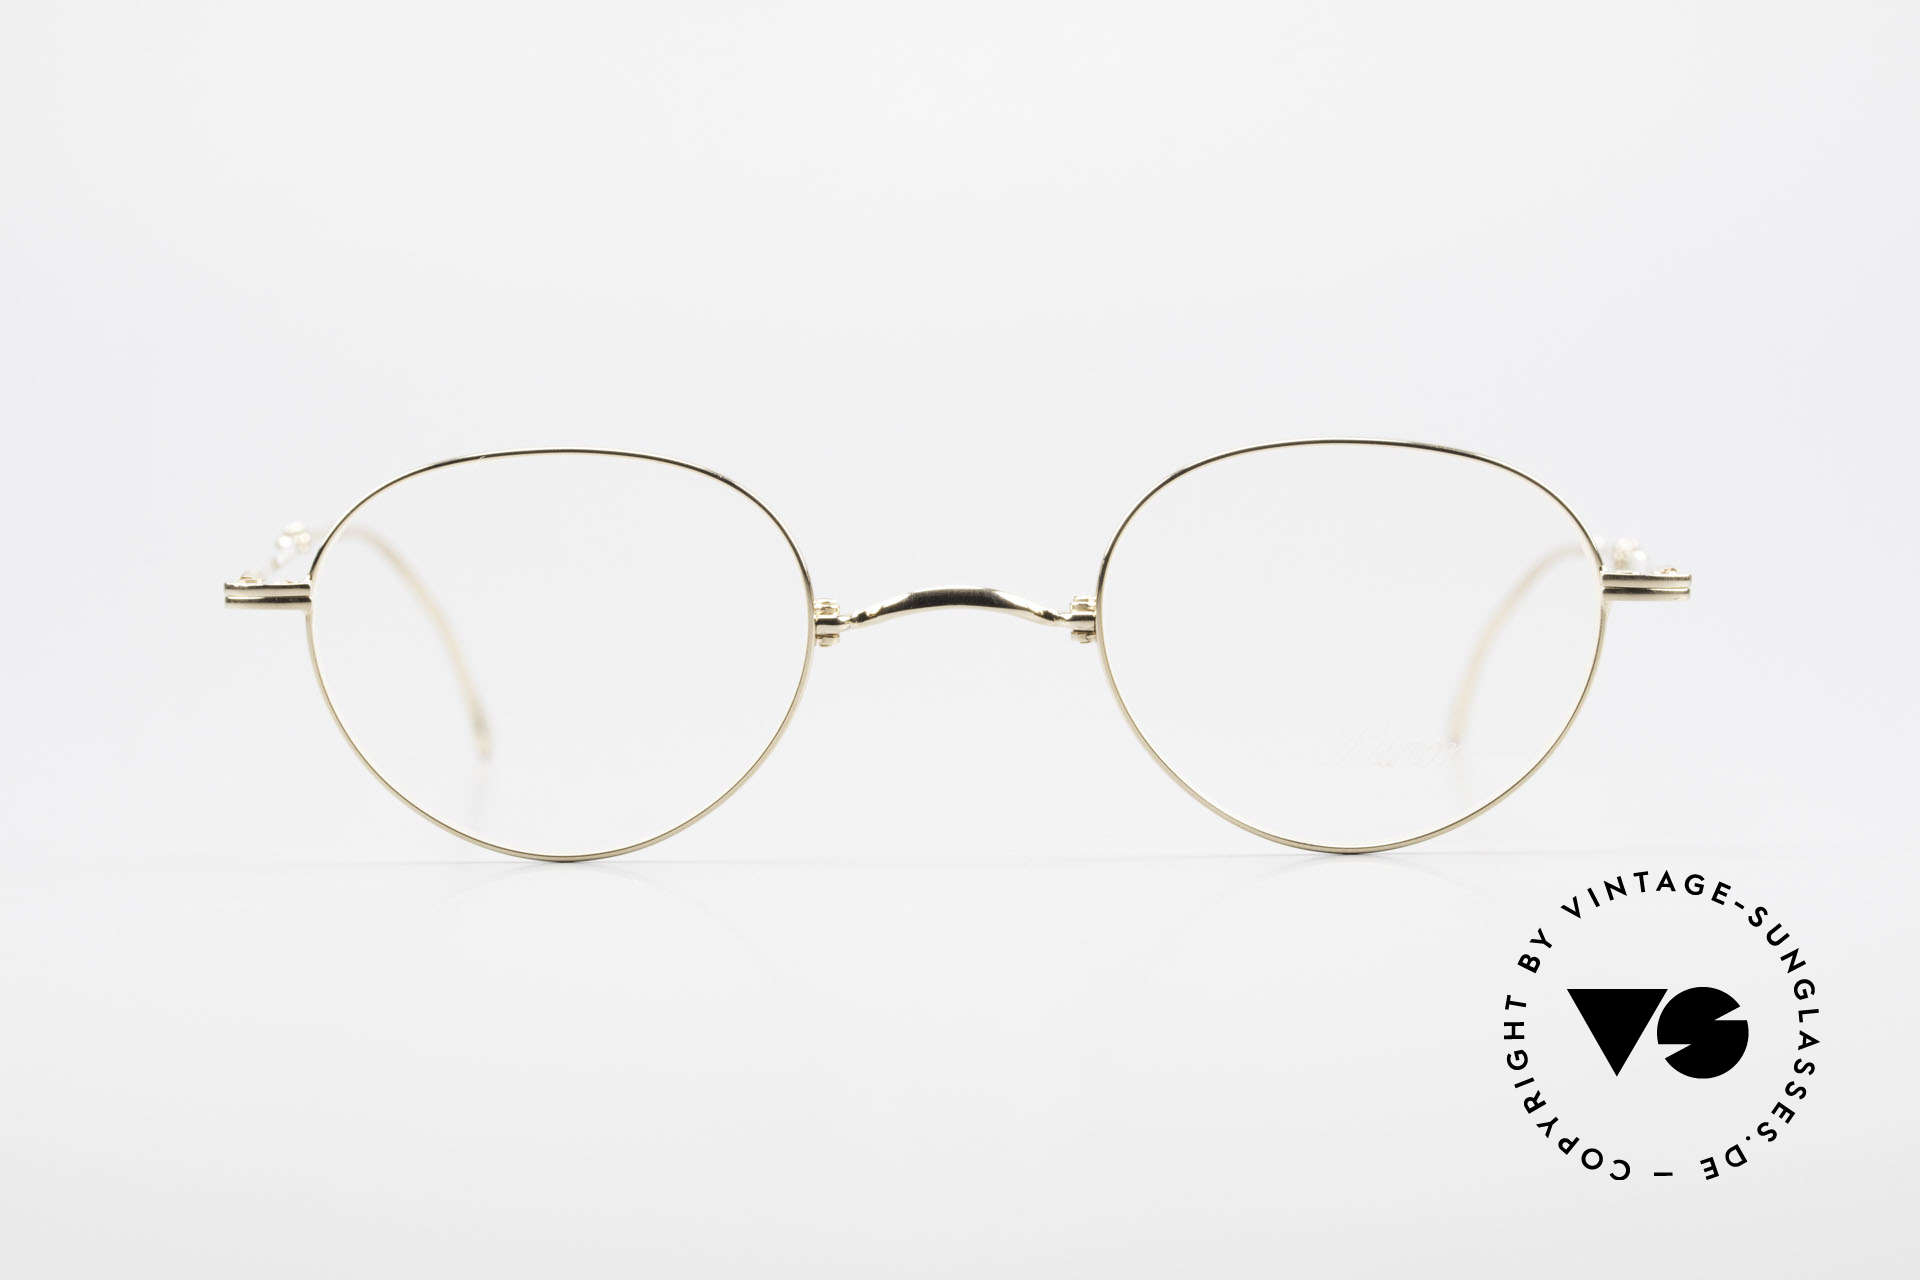 Lunor XXV Folding 03 Lunor Foldable Panto Glasses, traditional German brand; quality handmade in Germany, Made for Men and Women